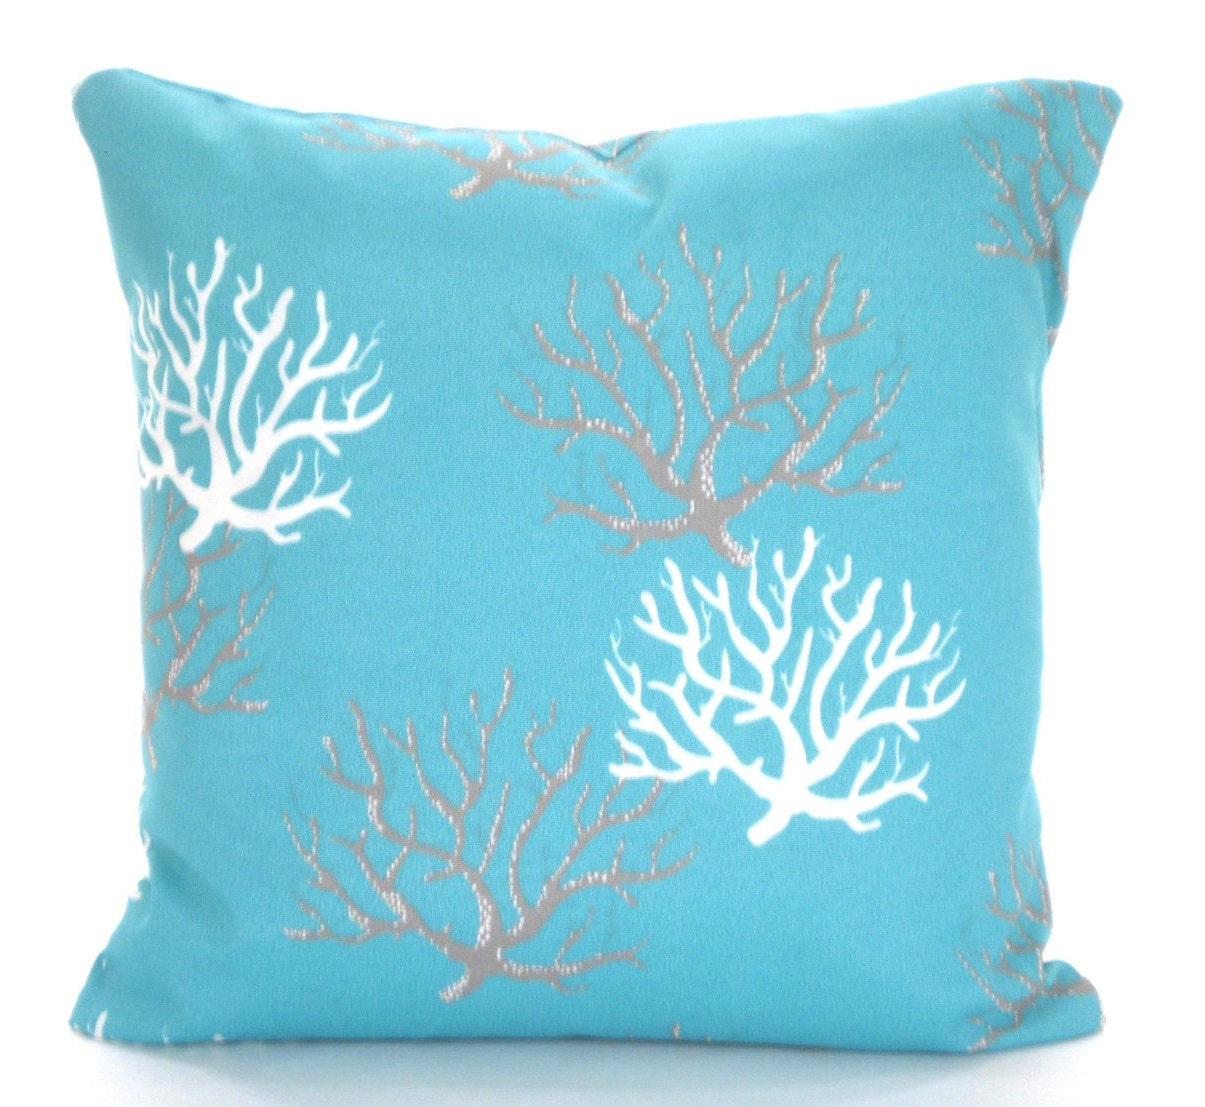 Throw Pillows Nordstrom : OUTDOOR Aqua Nautical Pillow Covers Decorative Pillows